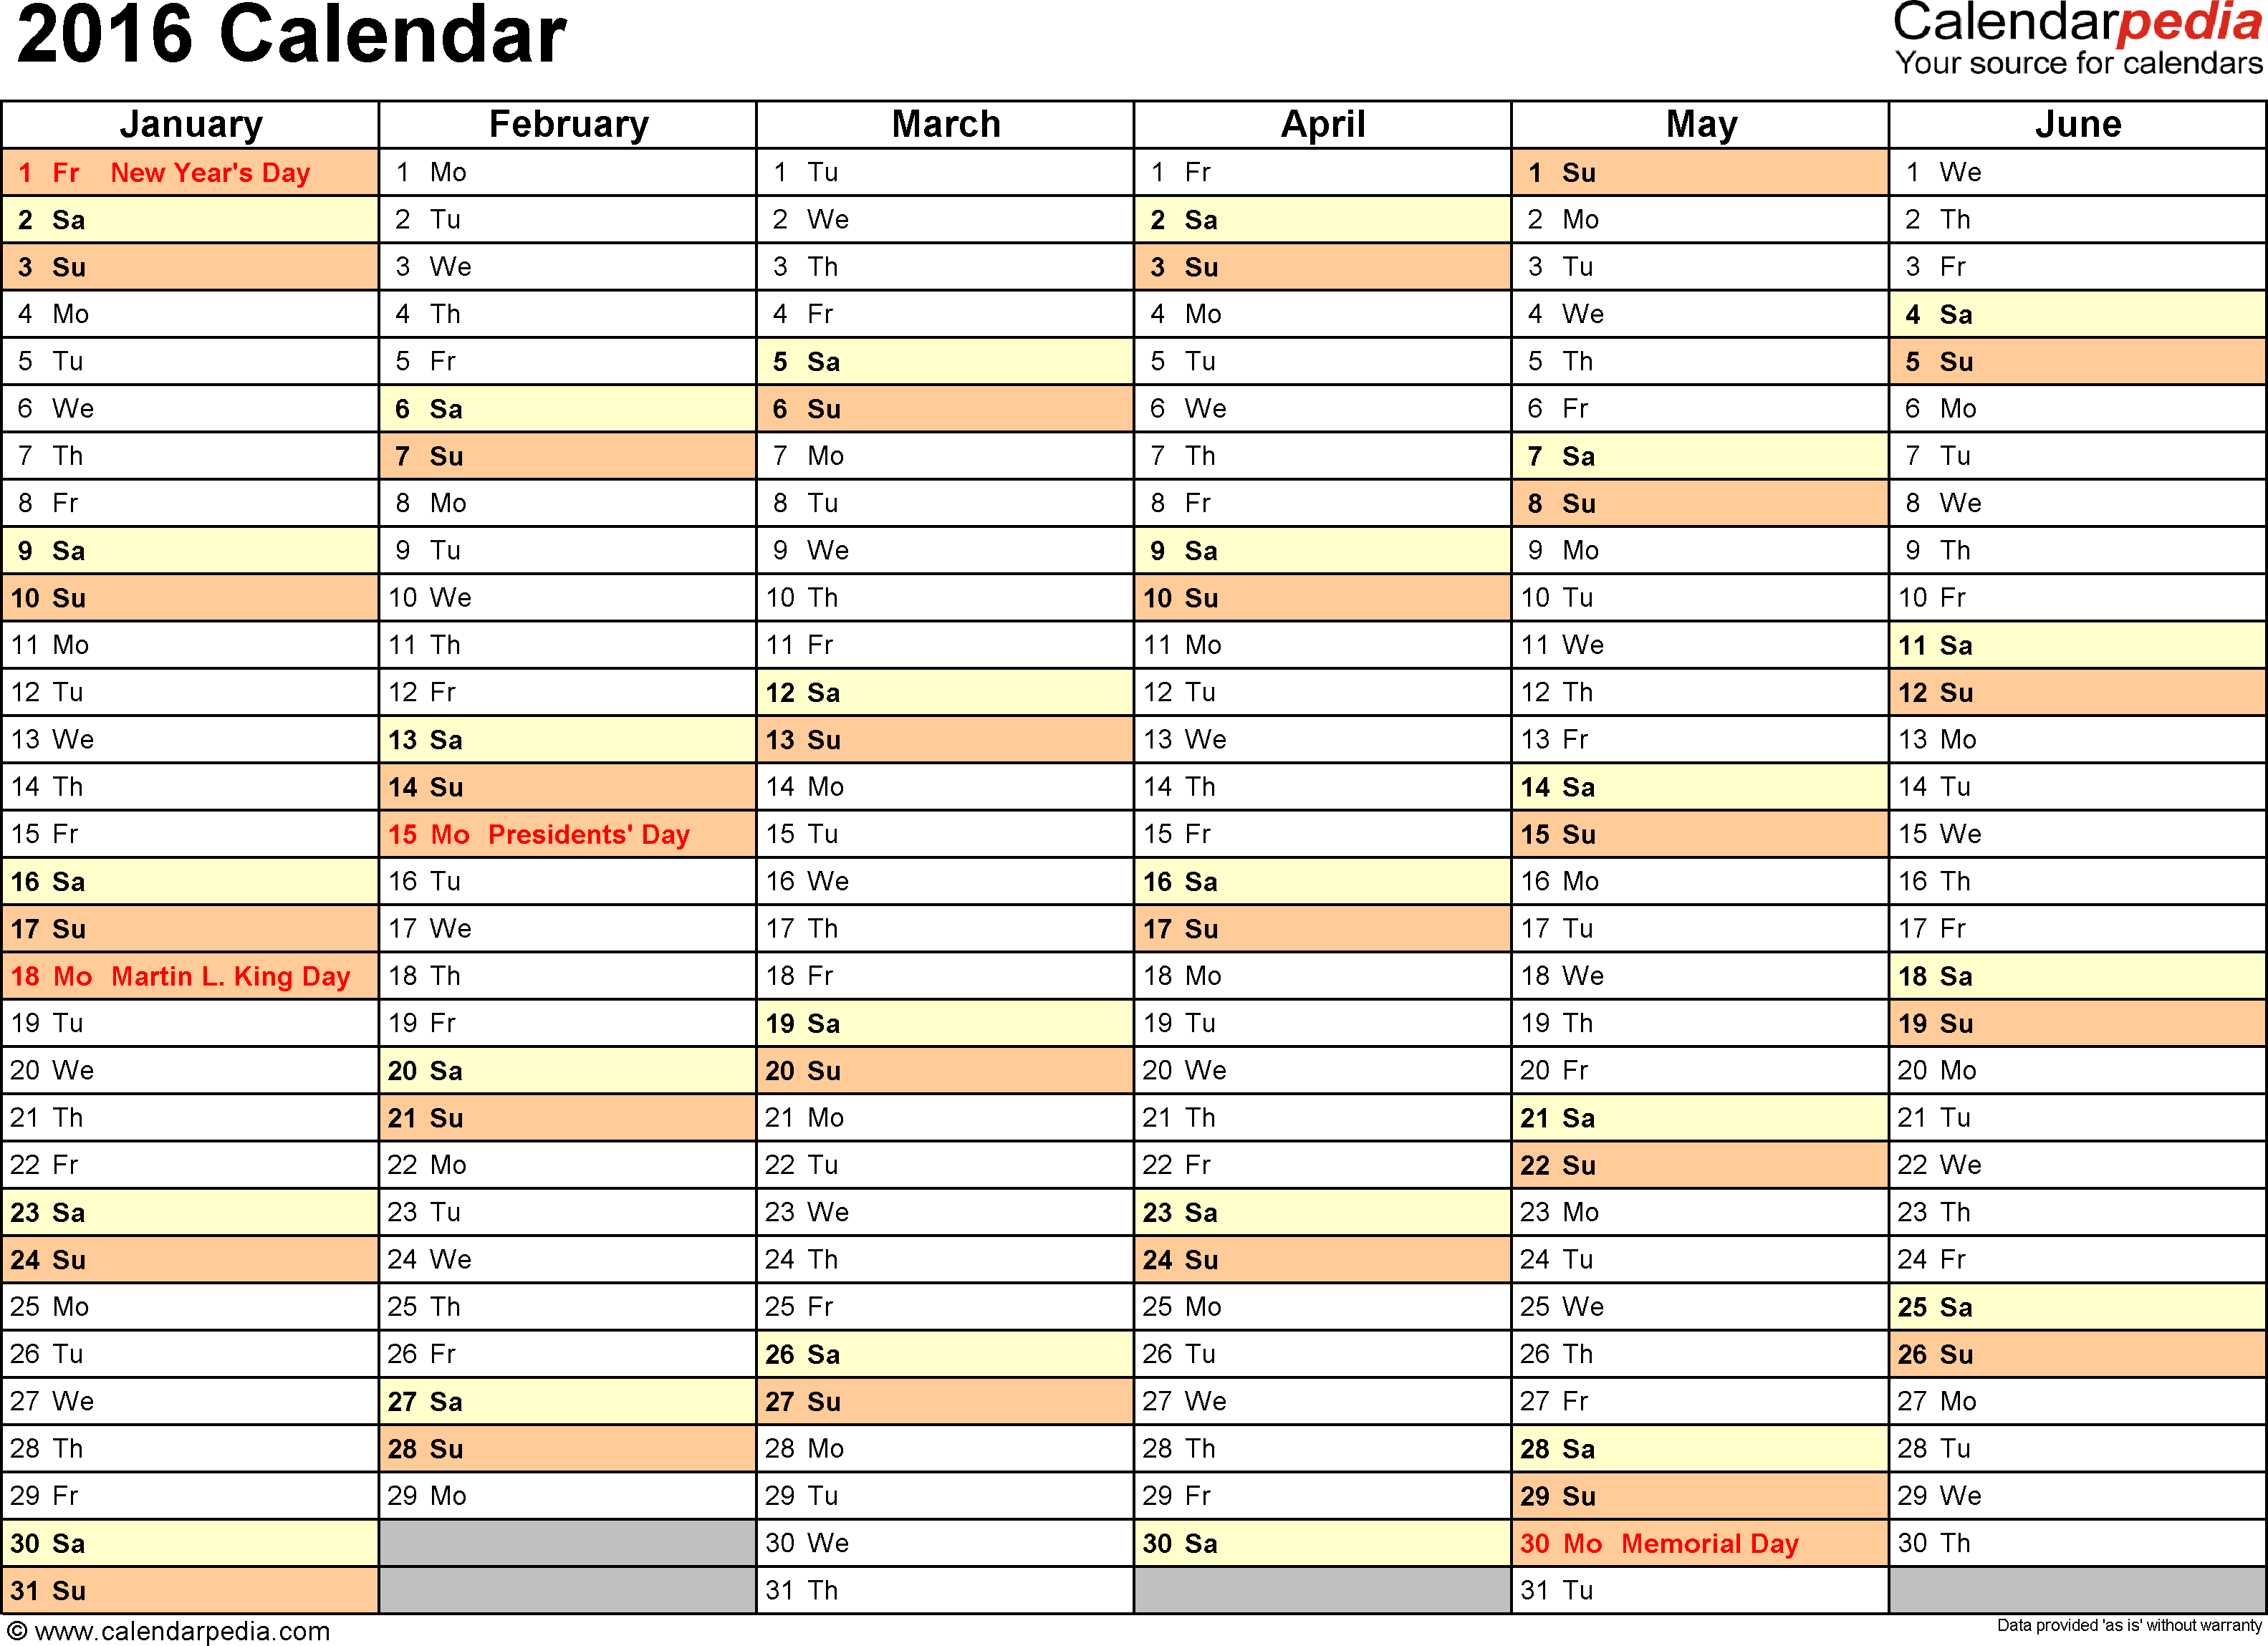 Ediblewildsus  Terrific  Calendar  Download  Free Printable Excel Templates Xls With Great Template   Calendar For Excel Months Horizontally  Pages Landscape Orientation With Amazing Linear Regression Using Excel Also Microsoft Excel  Step By Step In Addition Issue Tracker Excel Template And Excel  Shared Workbook As Well As How To Build A Formula In Excel Additionally Excel Office Online From Calendarpediacom With Ediblewildsus  Great  Calendar  Download  Free Printable Excel Templates Xls With Amazing Template   Calendar For Excel Months Horizontally  Pages Landscape Orientation And Terrific Linear Regression Using Excel Also Microsoft Excel  Step By Step In Addition Issue Tracker Excel Template From Calendarpediacom